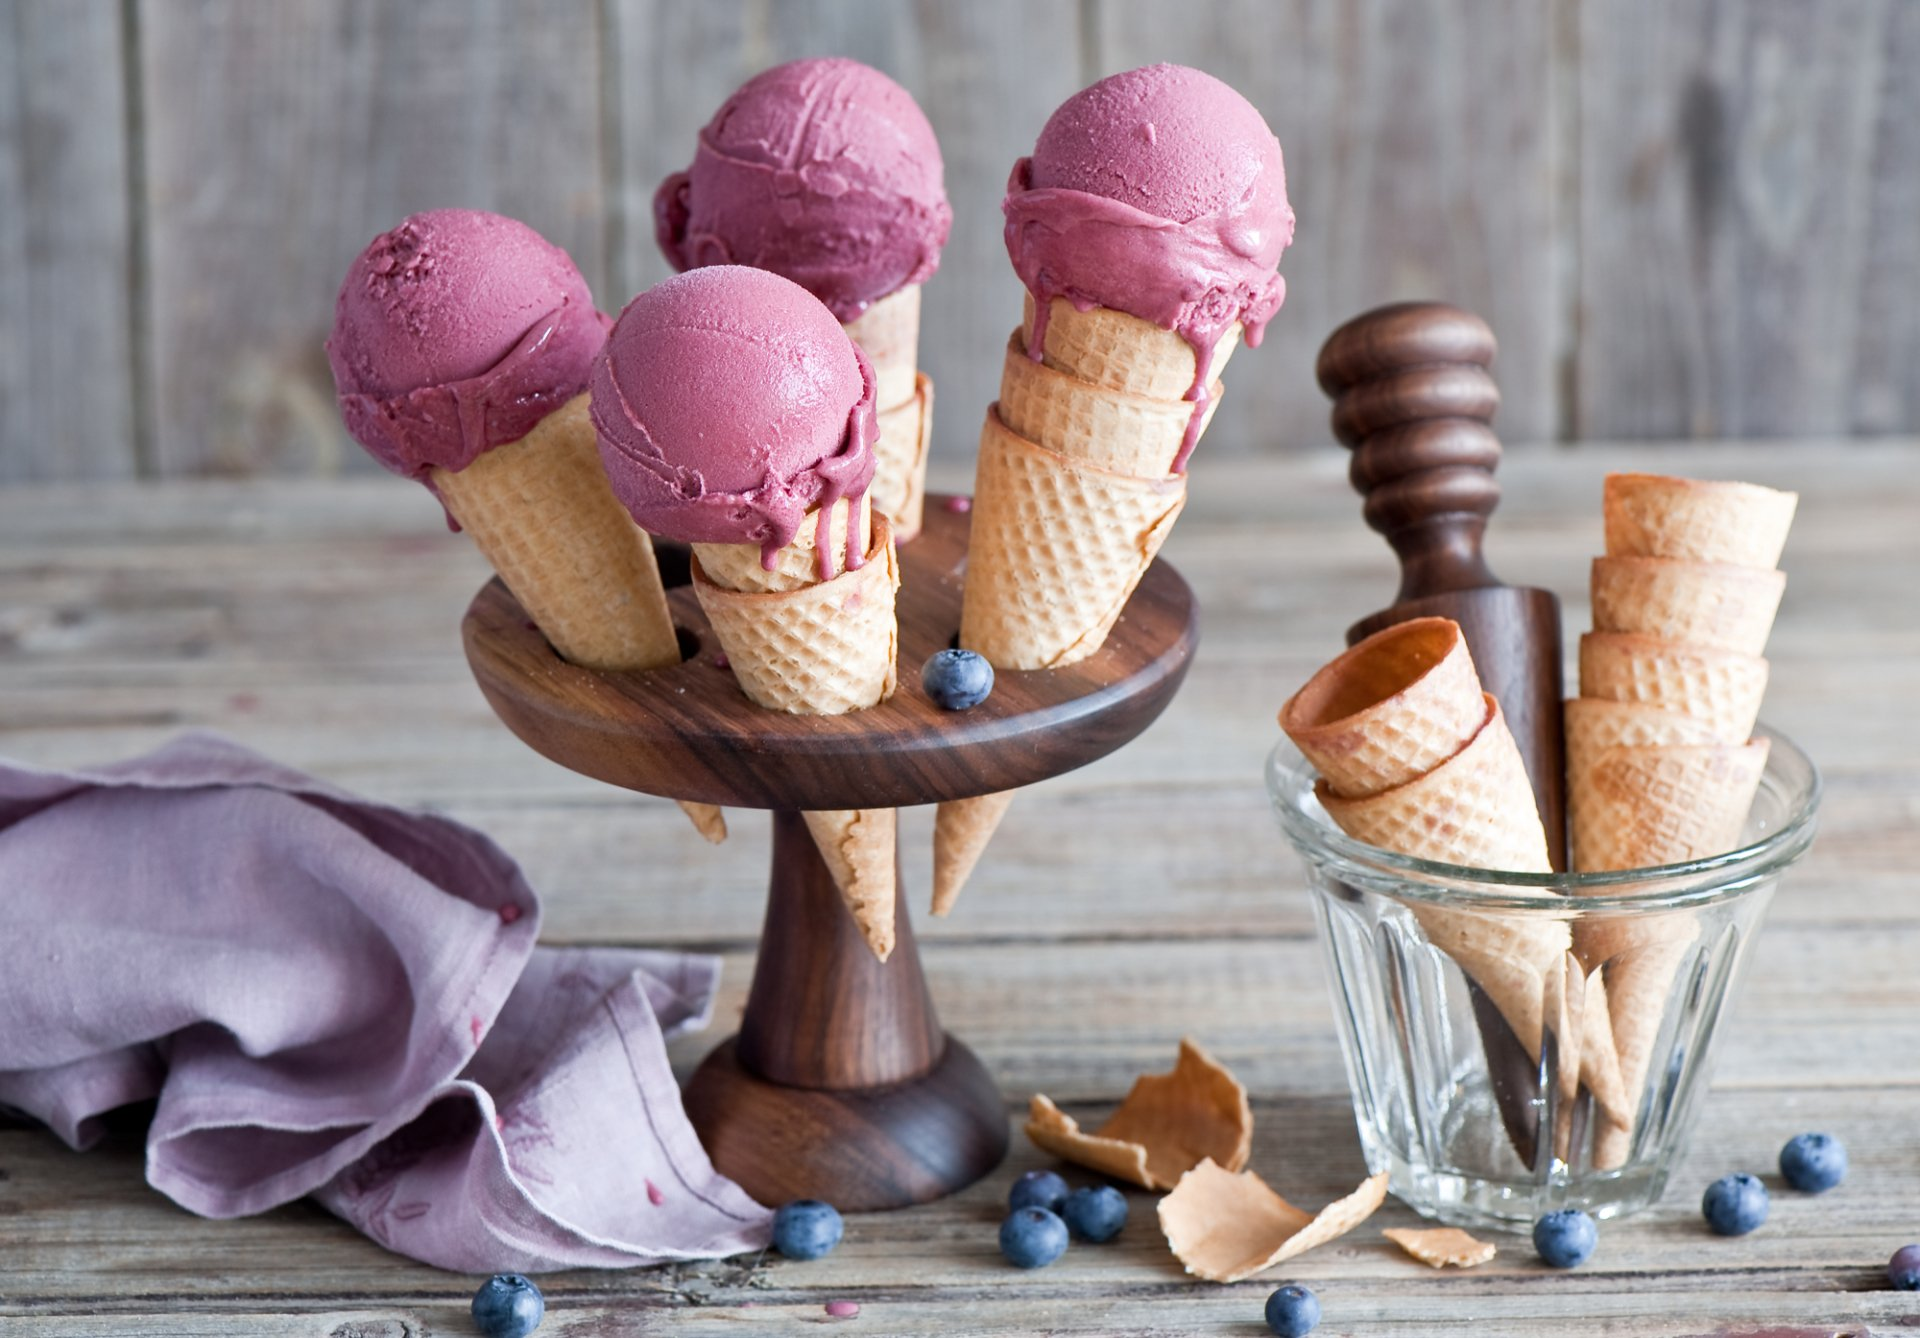 Food - Ice Cream  Still Life Summer Wallpaper